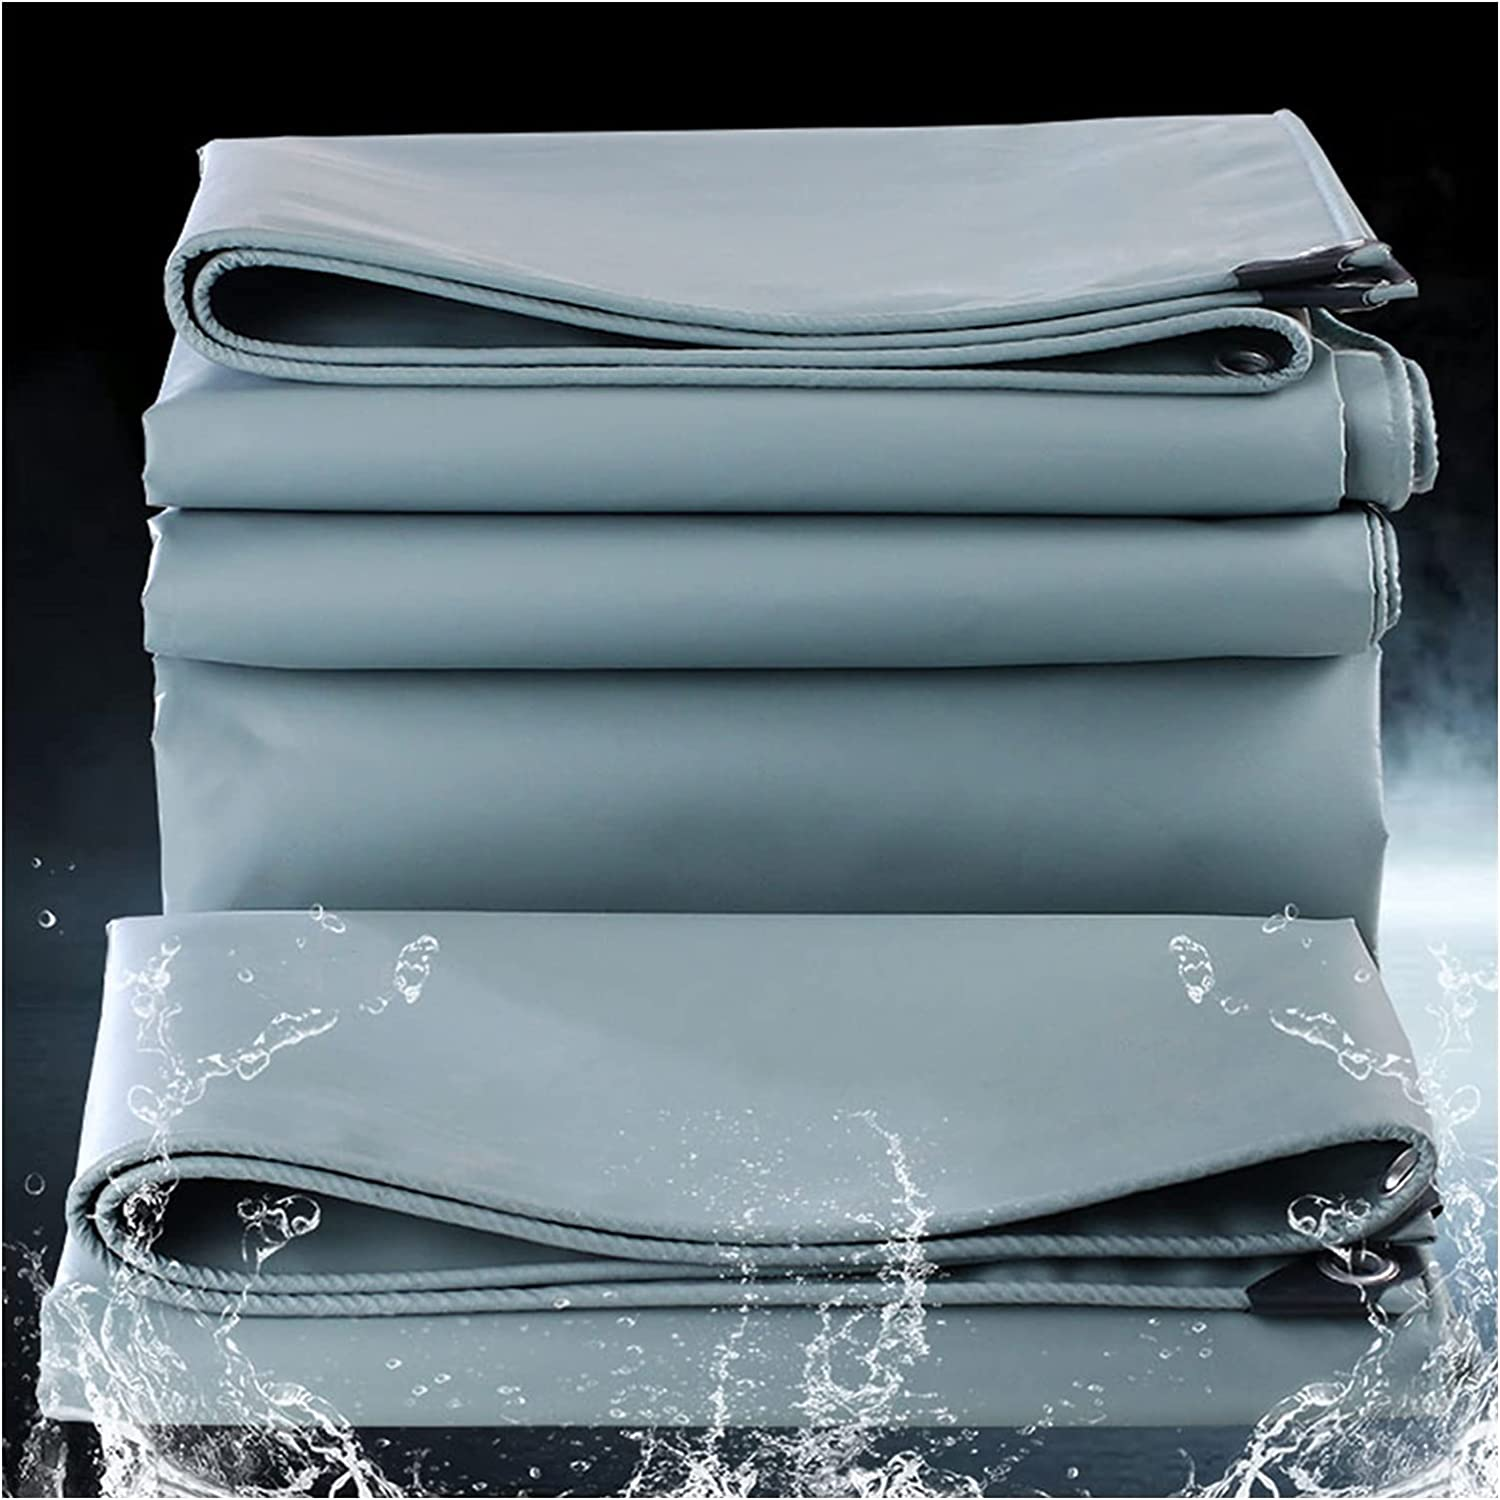 ALGWXQ Super 5% OFF Heavy DutyTarp UV Thick 70% OFF Outlet Waterproof Resistant Rip